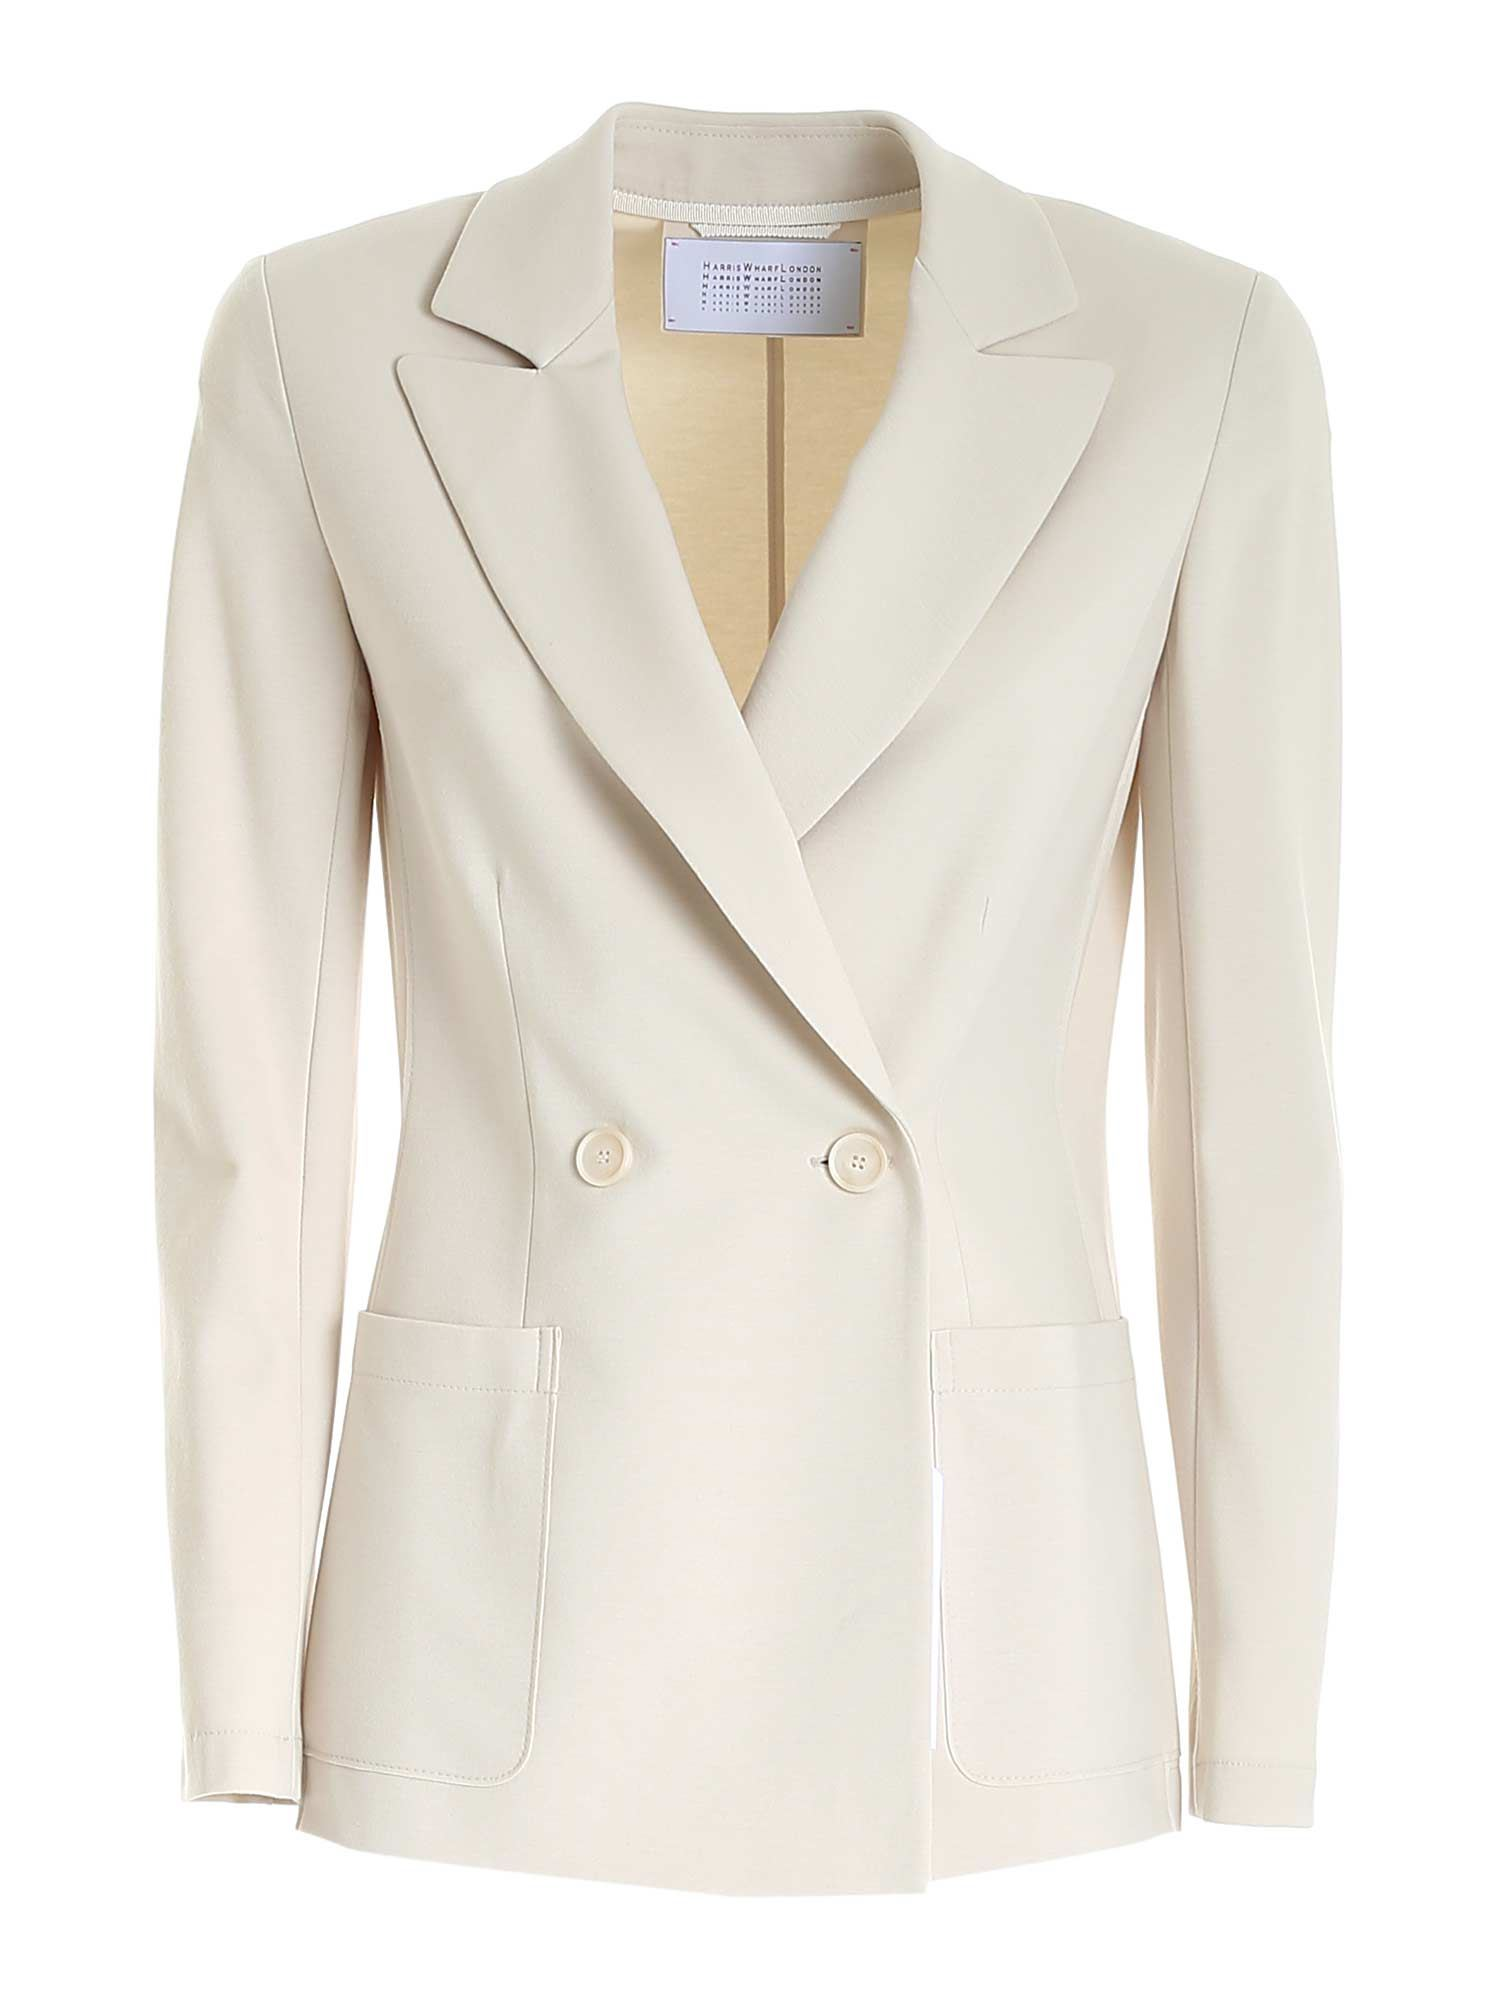 Harris Wharf London DOUBLE-BREASTED JACKET IN IVORY COLOR